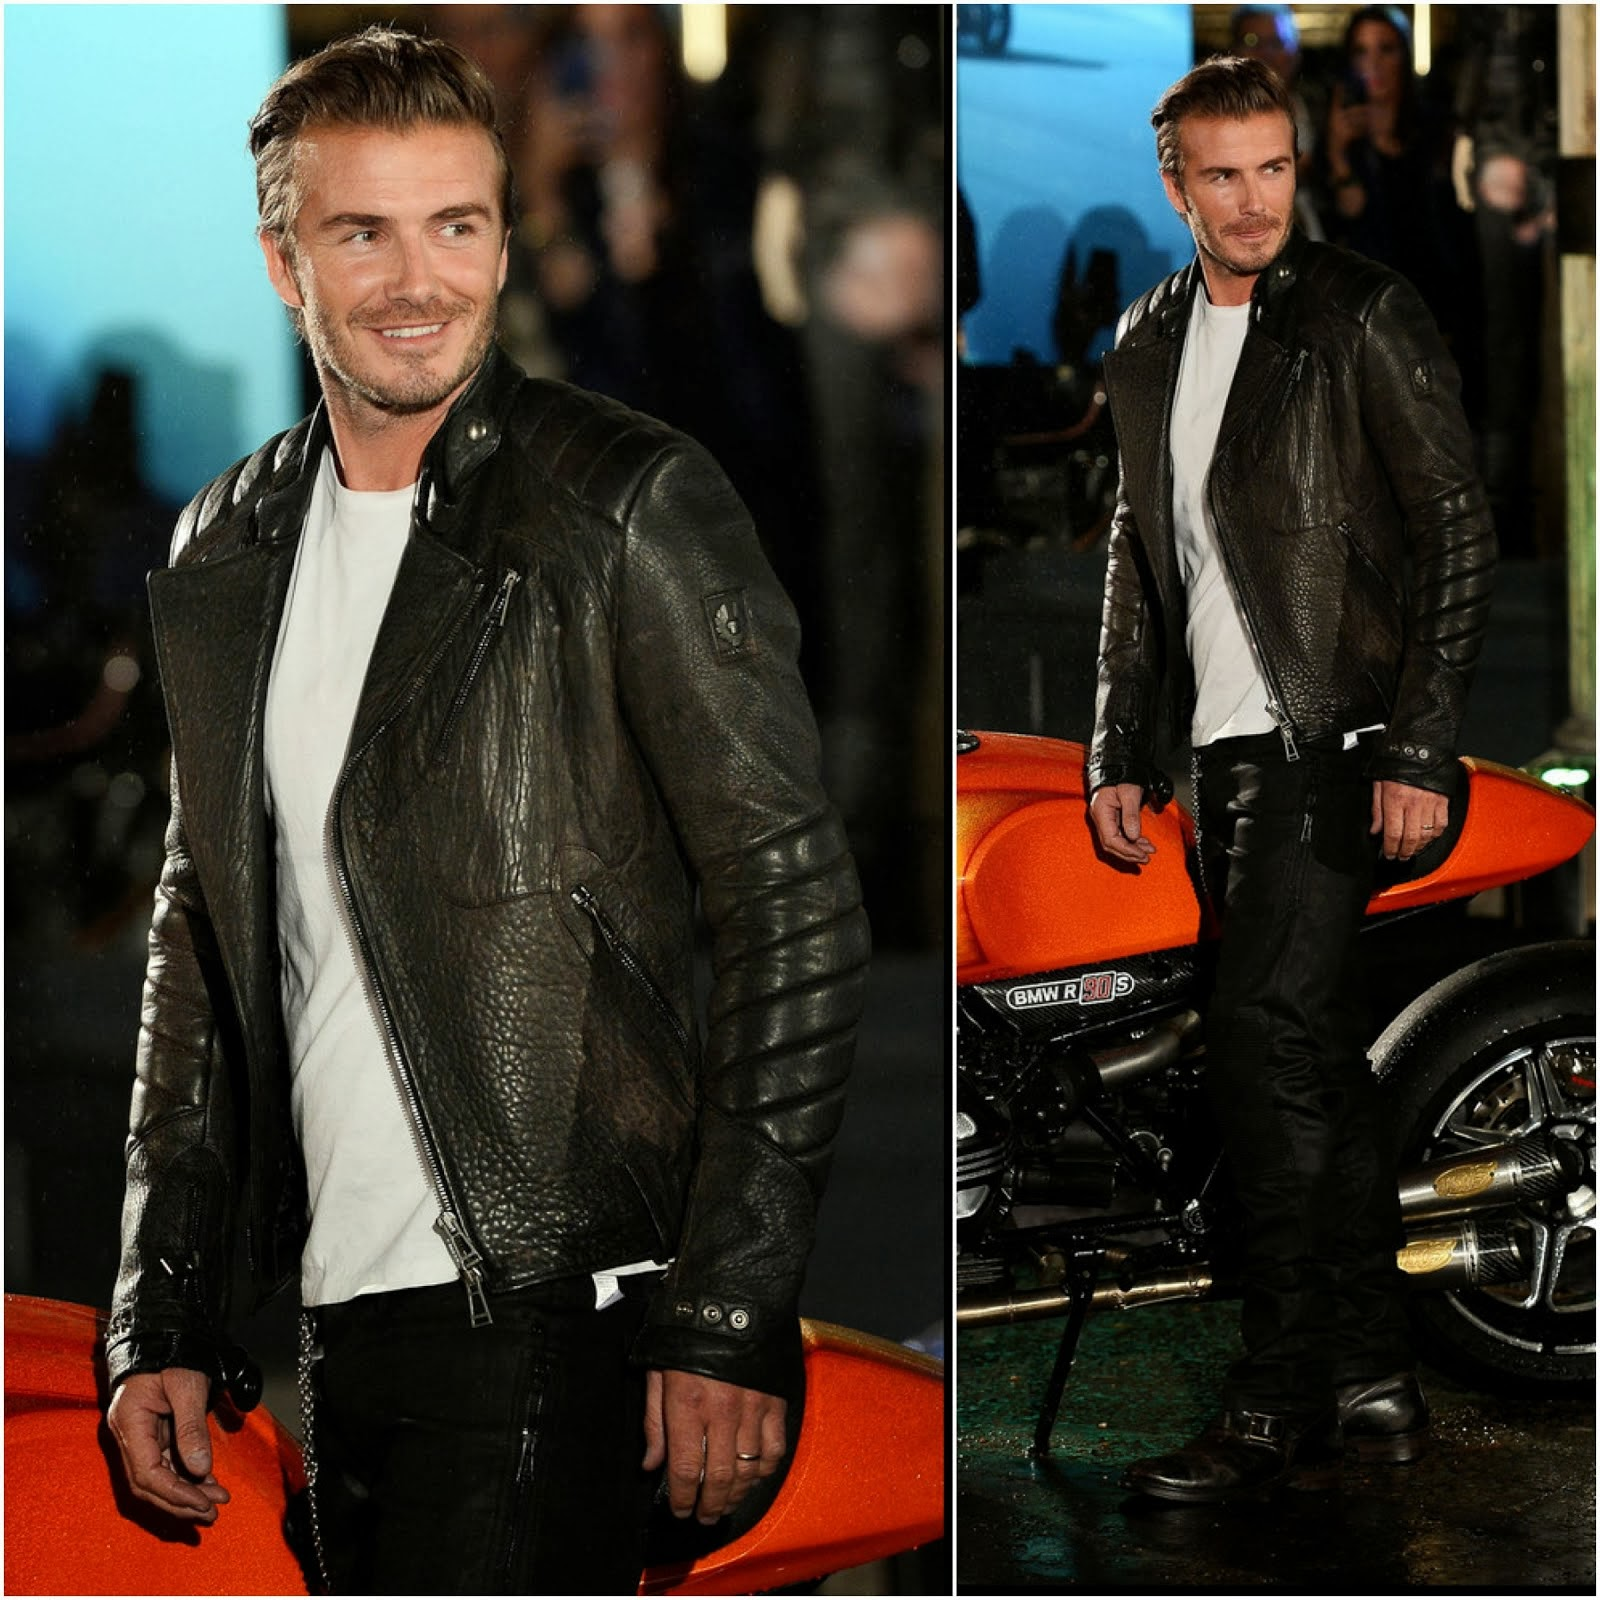 00O00 Menswear Blog: David Beckham in Belstaff - Belstaff House Opening, London